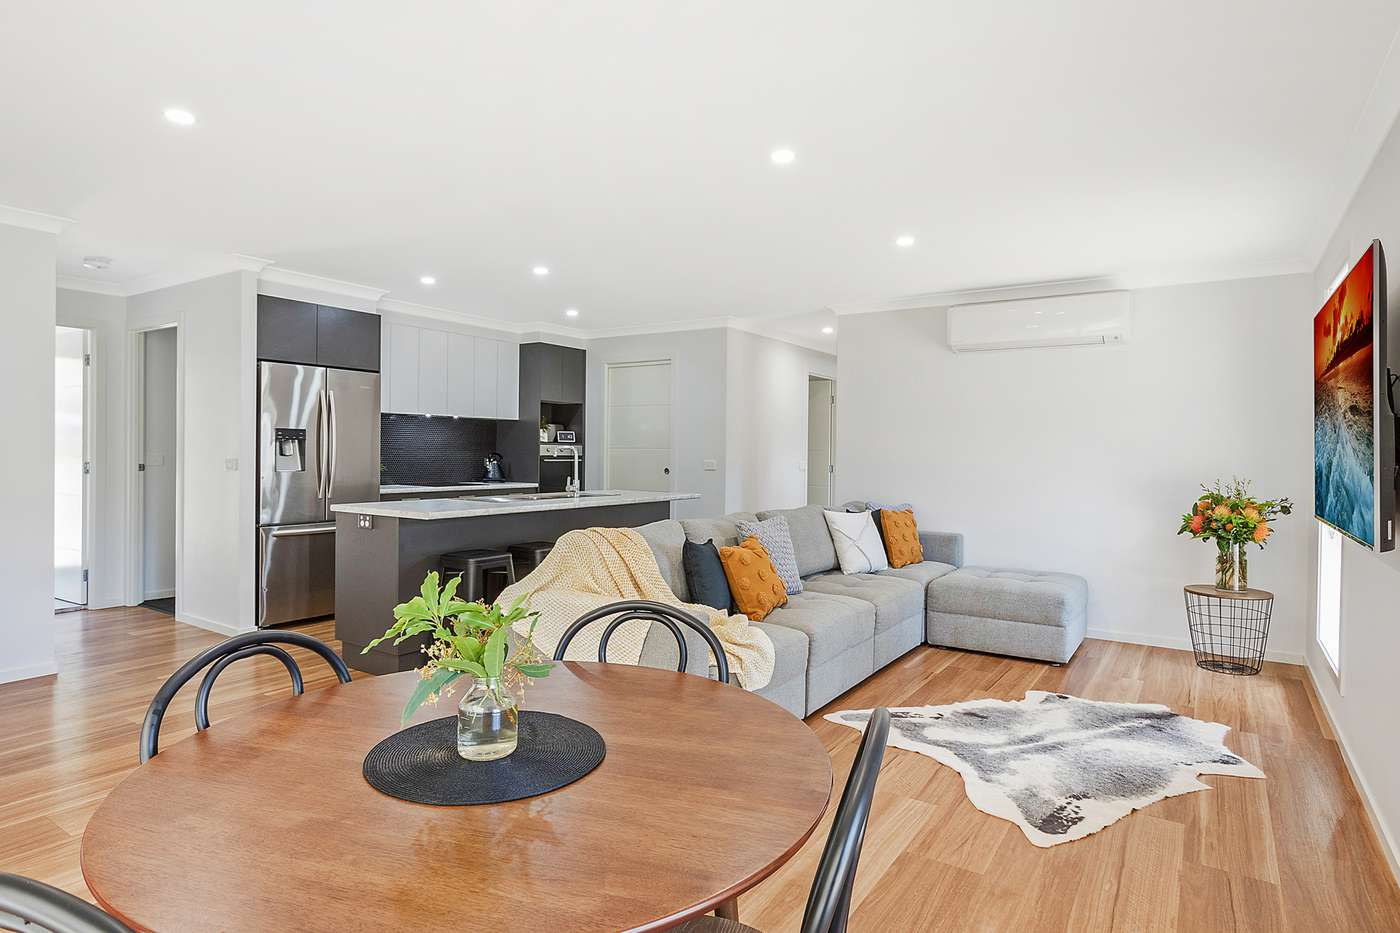 Main view of Homely house listing, 107 Bournda Park Way, Wallagoot, NSW 2550